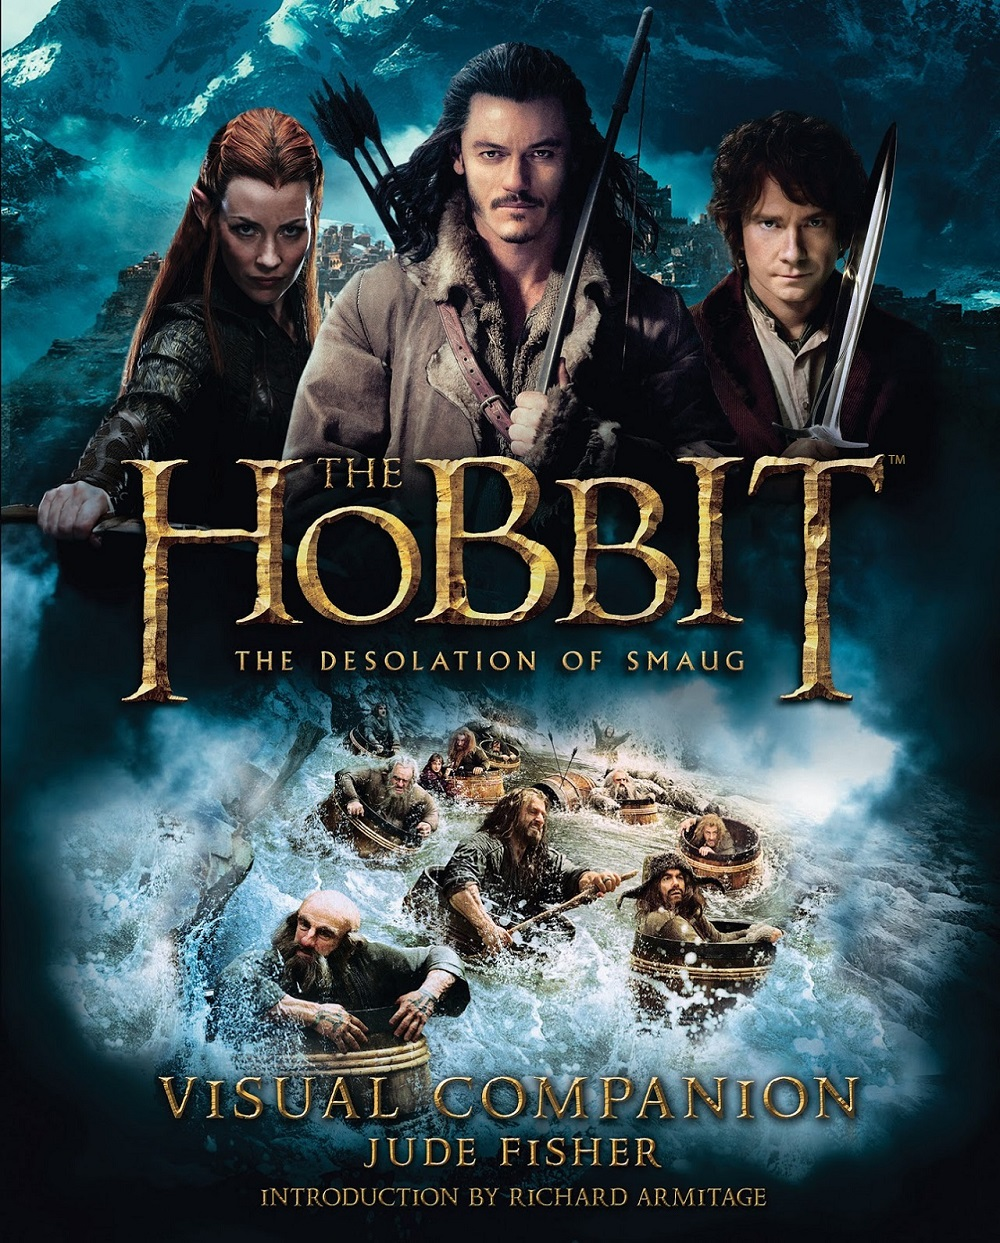 hobbit-desolation-smaug-visual-companion